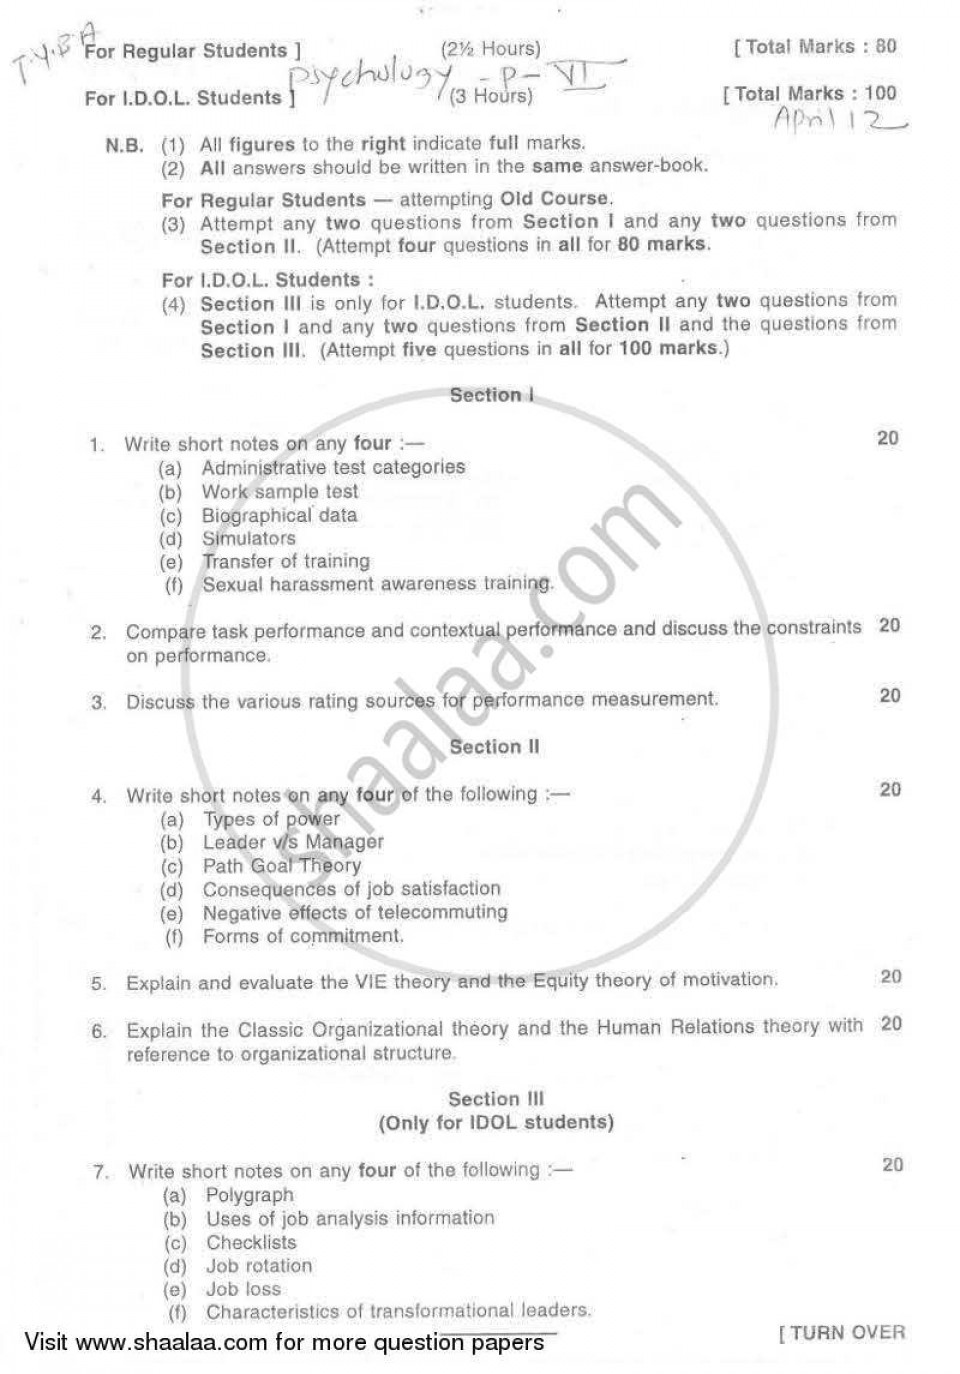 017 Psychologyearch Paper On Dreams University Of Mumbai Bachelor Industrial Organizational T Y Yearly Pattern Semester Tyba 2011 29a03925dfc524f2aa4cb10e4d3da996a Singular Psychology Research Articles 2017 Topics 960